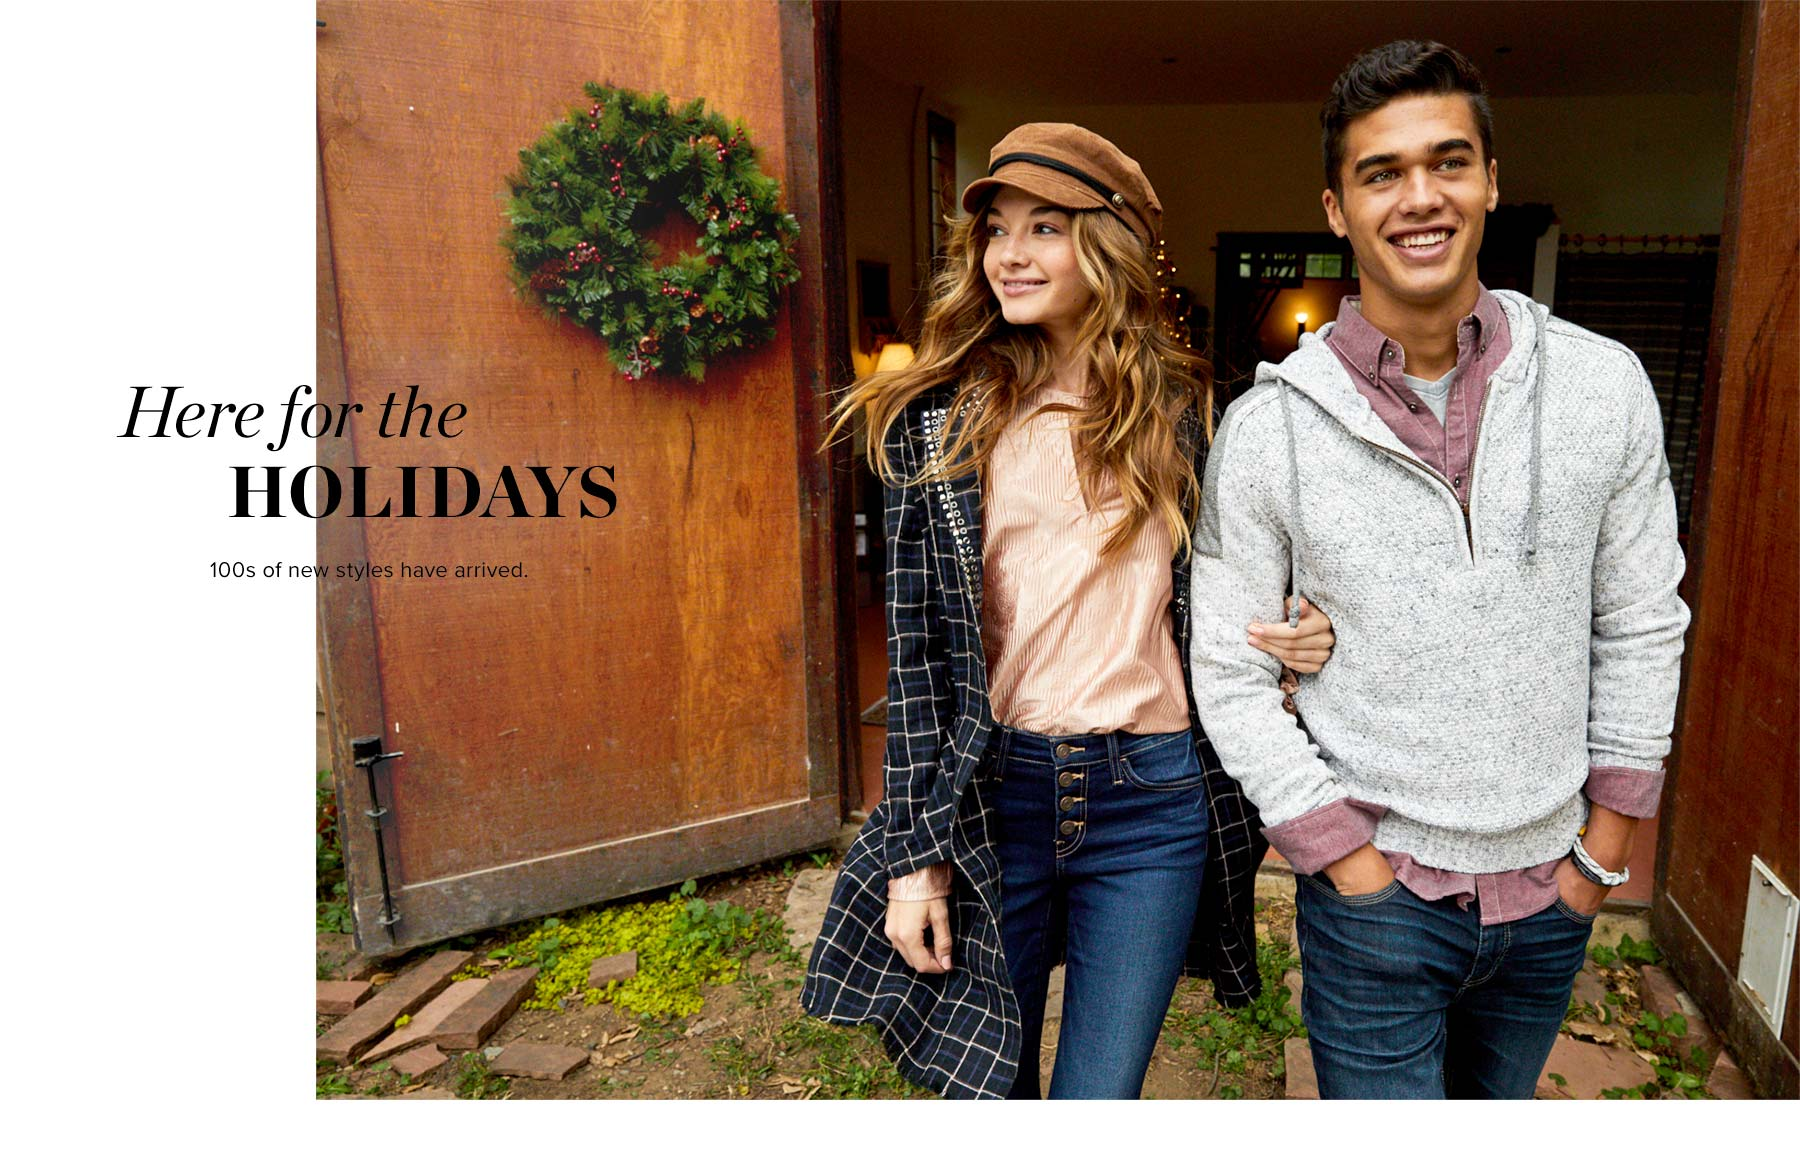 Here for the Holidays - 100s of new styles have arrived. Couple wearing a Buckle's latest clothing.